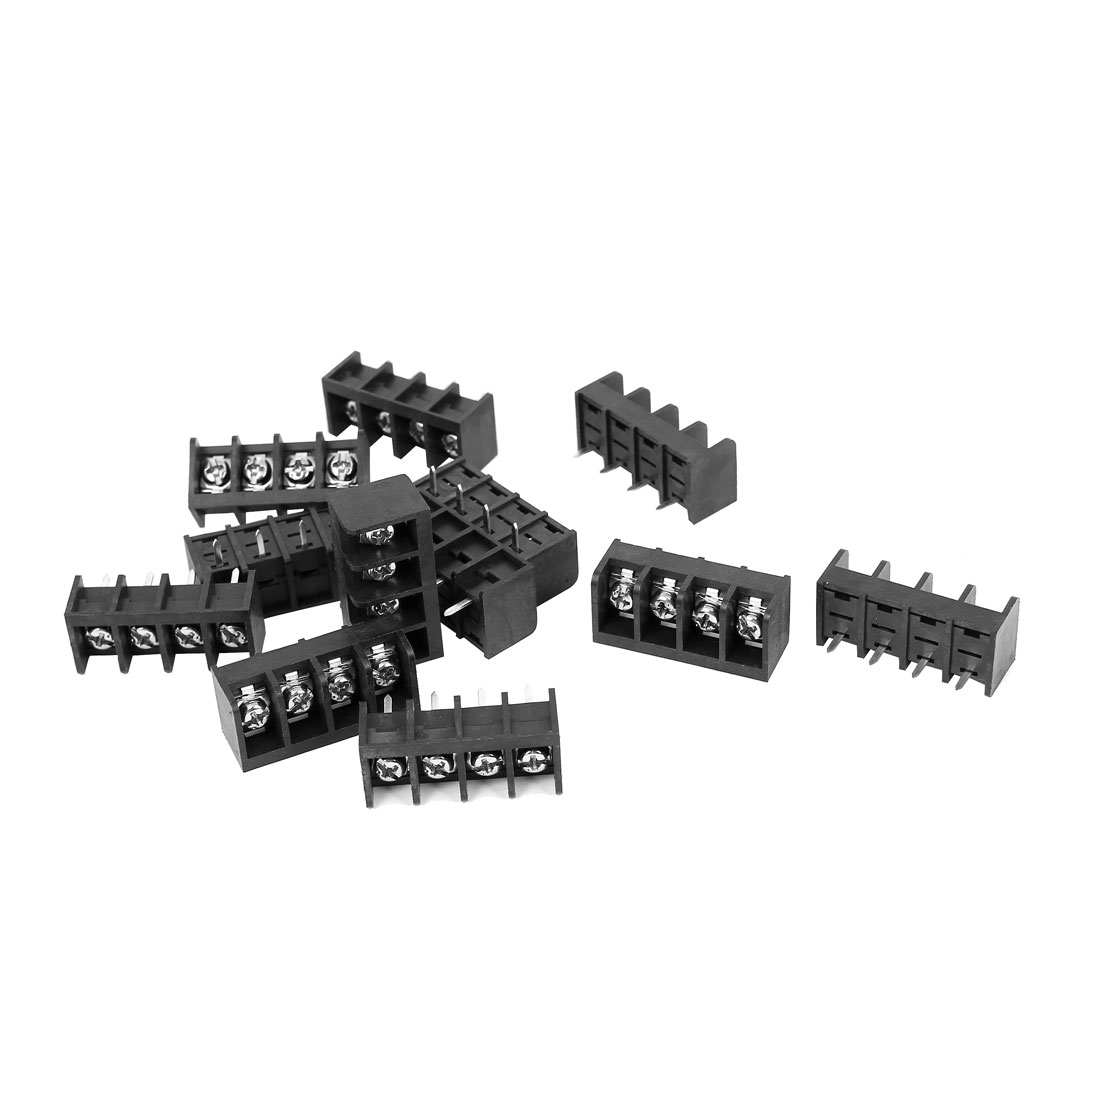 300V 25A 4 Way 9.5mm Spacing PCB Mounted Screw Terminal Block Connector 12pcs Black